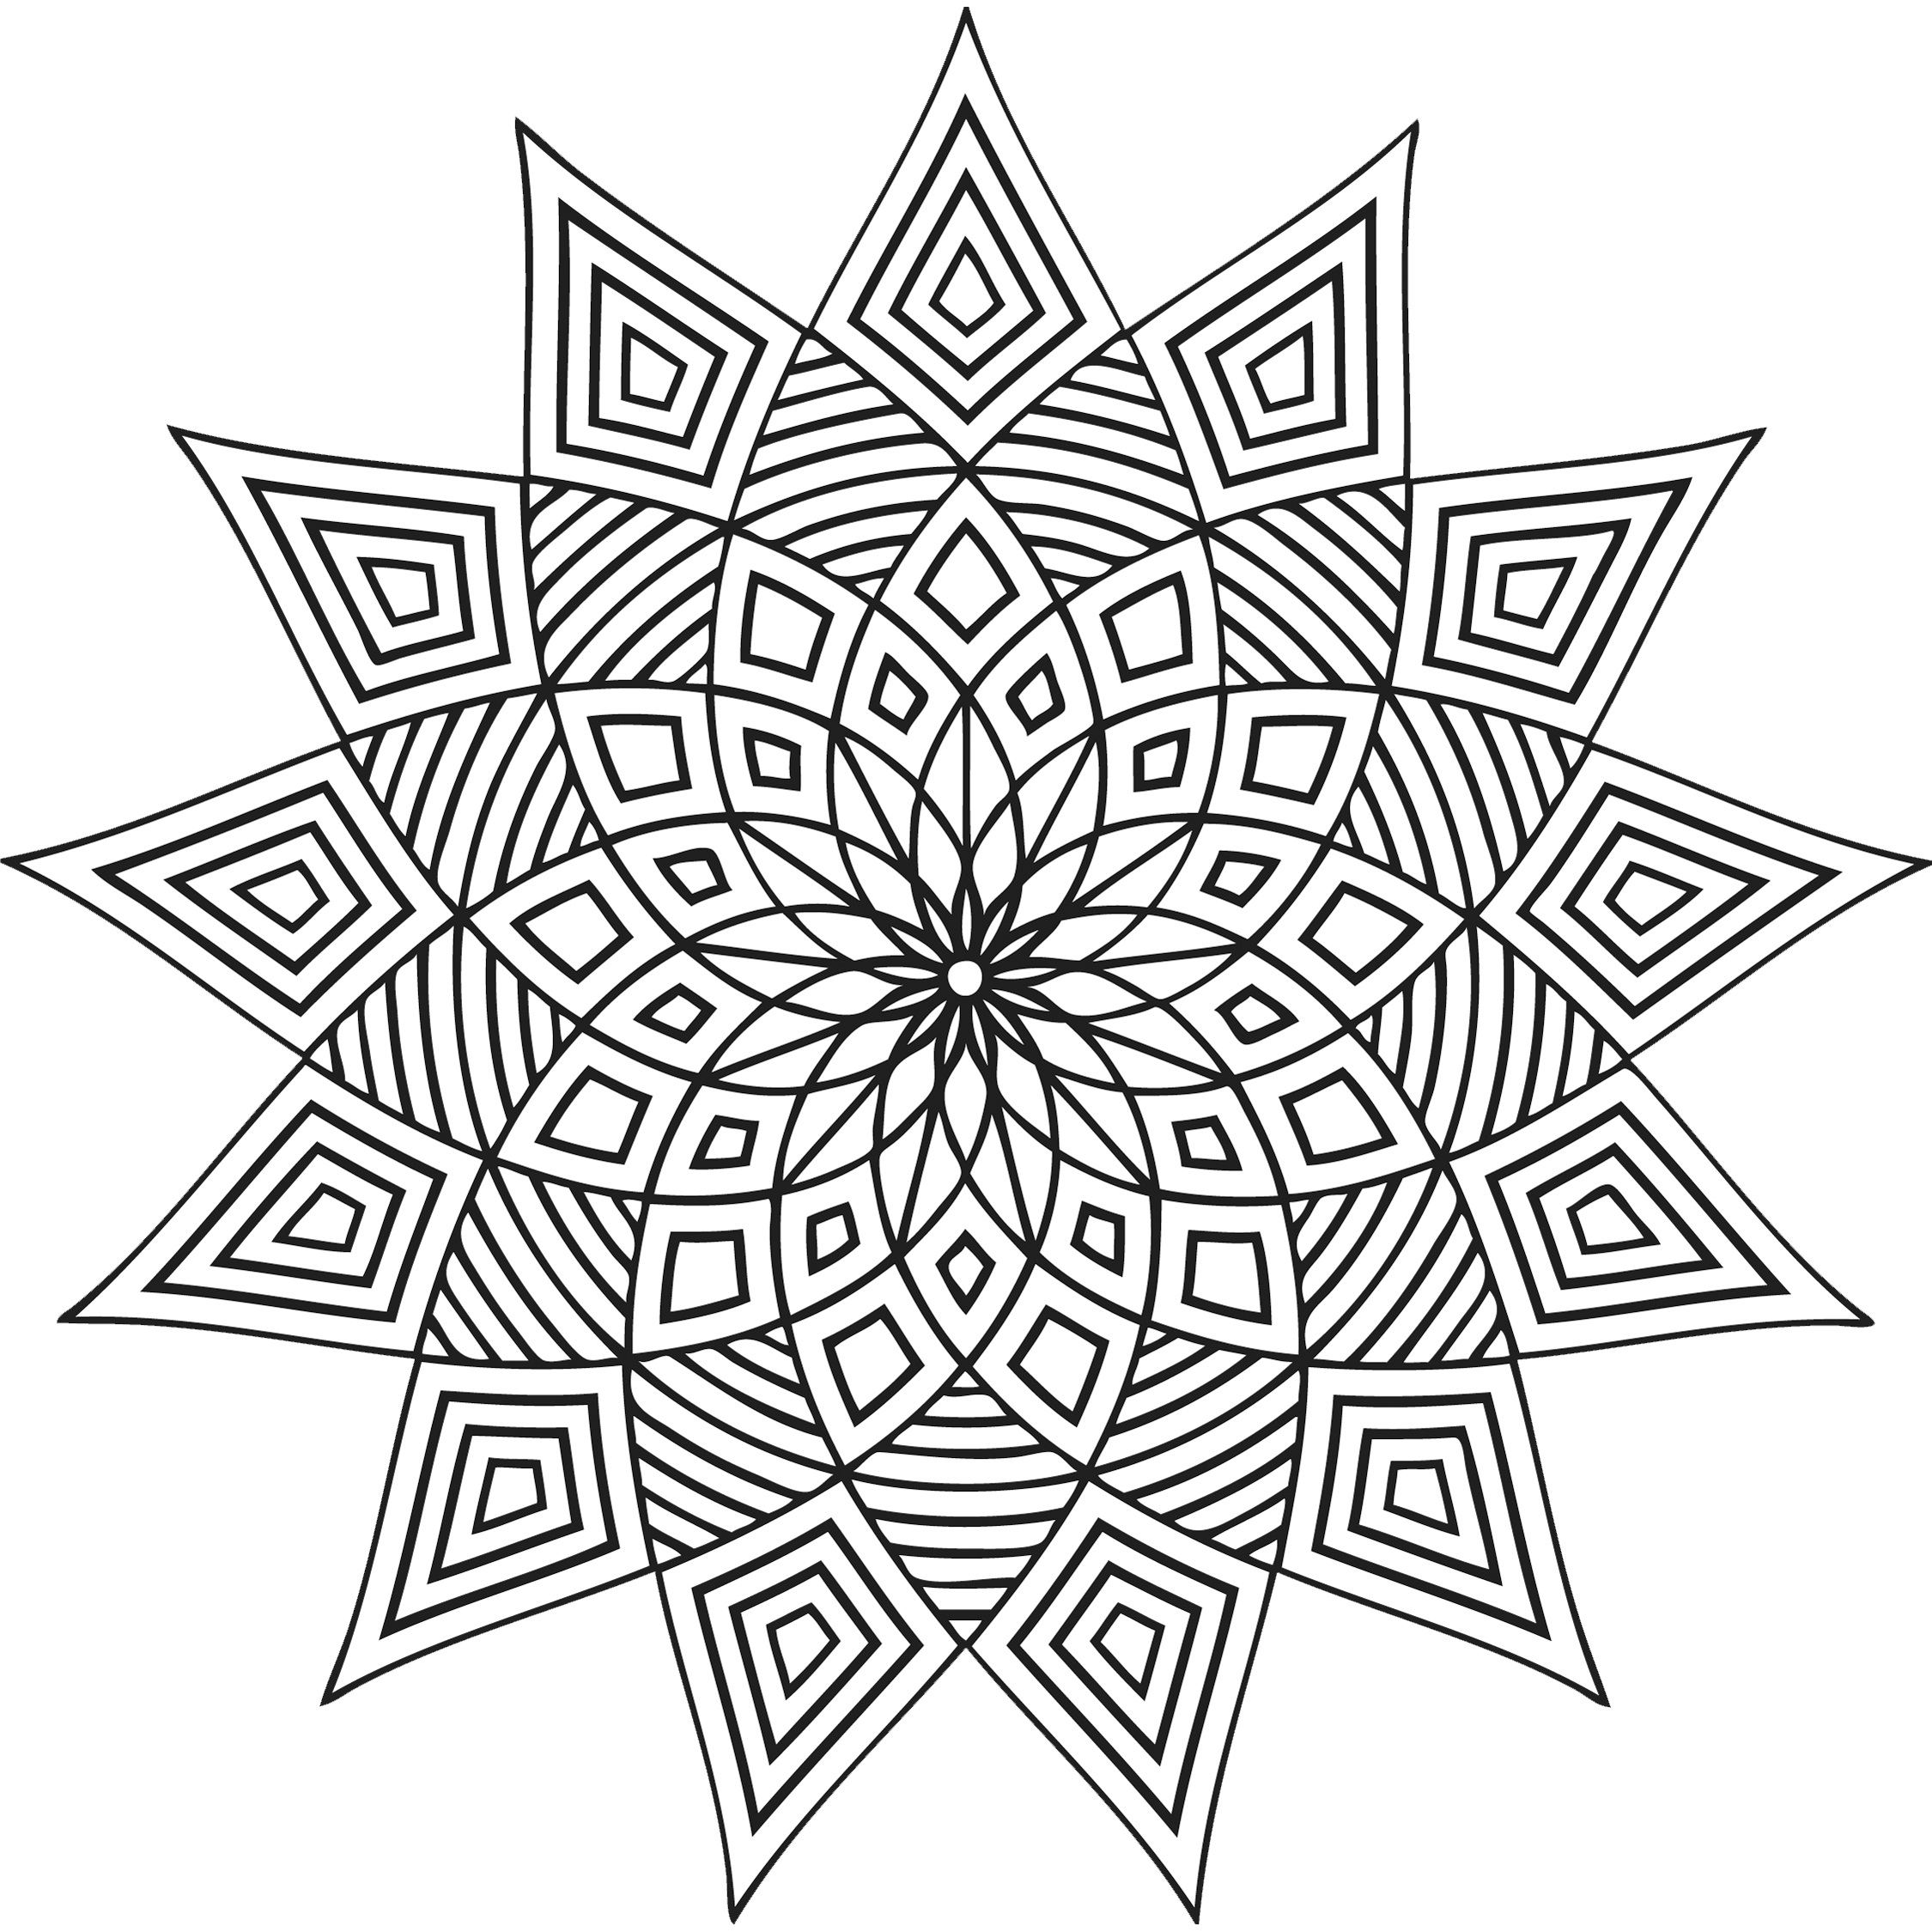 pattern coloring pages to print - photo#6